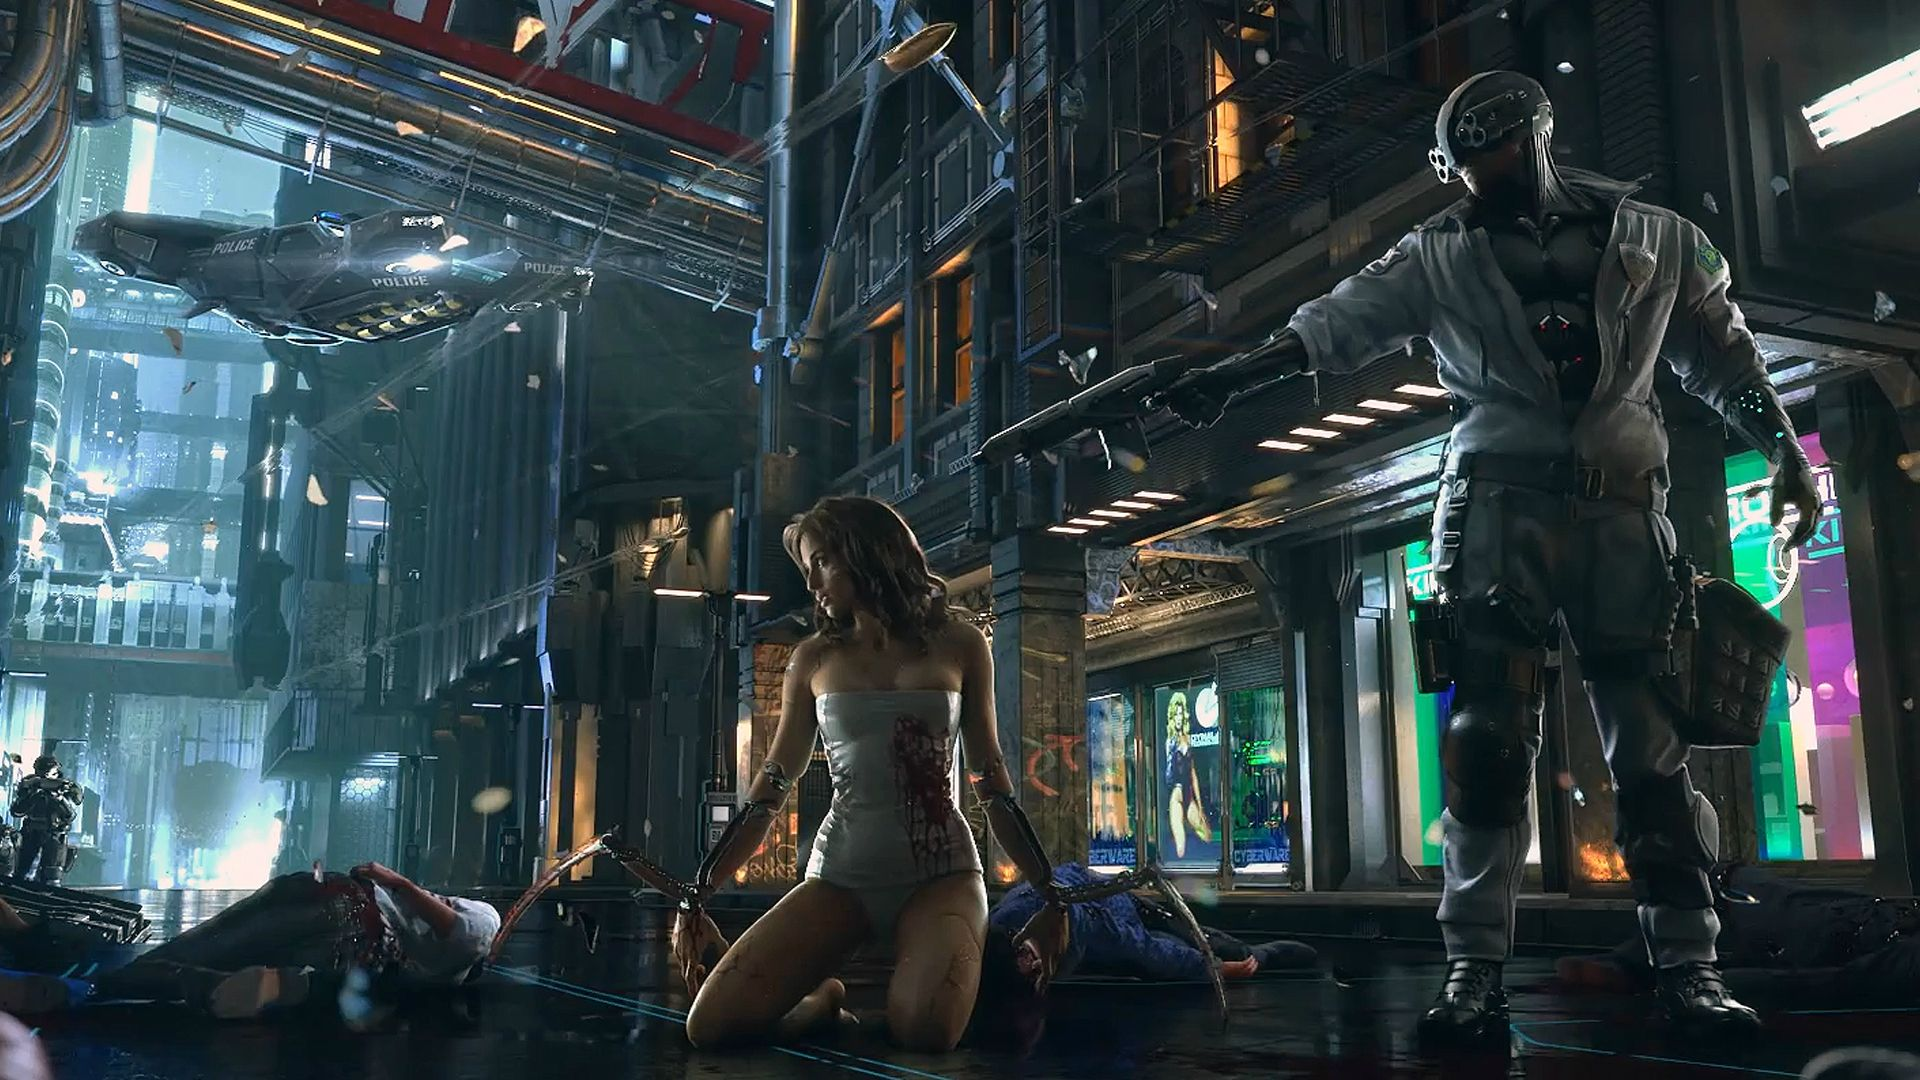 Screenshot for the game Cyberpunk 2077